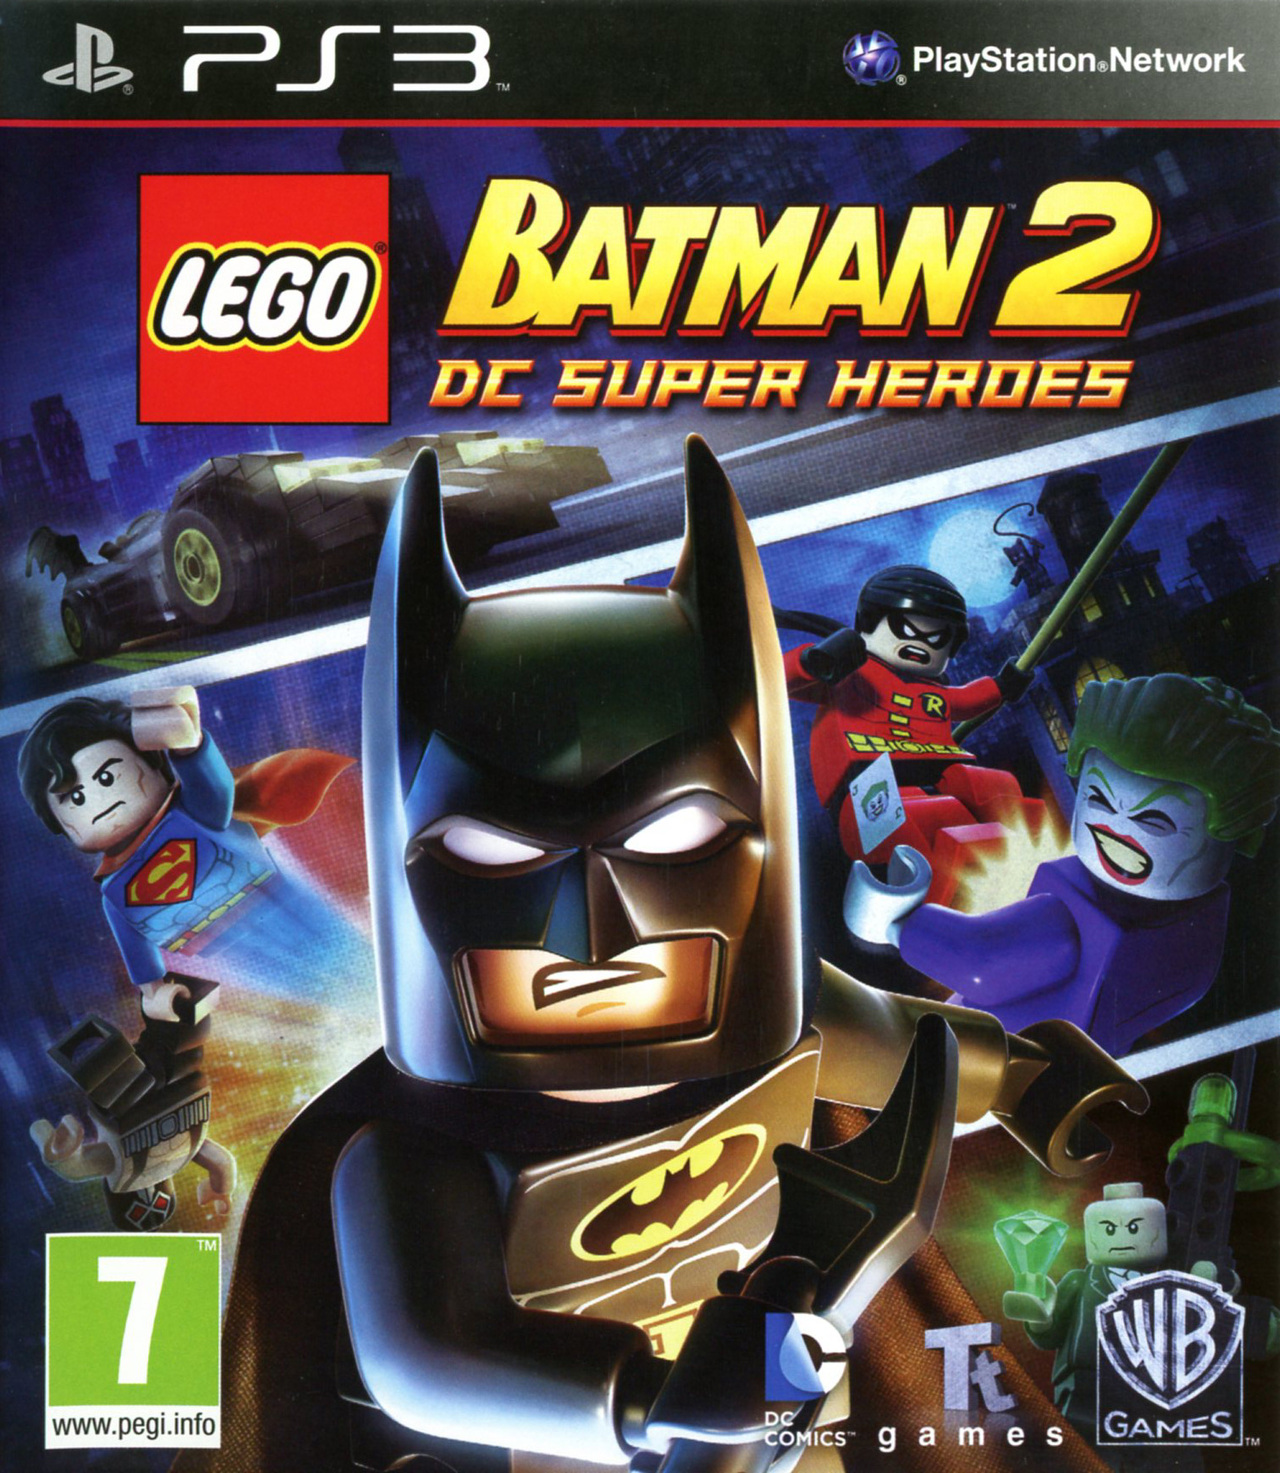 Test lego batman 2 dc super heroes pc xbox 360 ps3